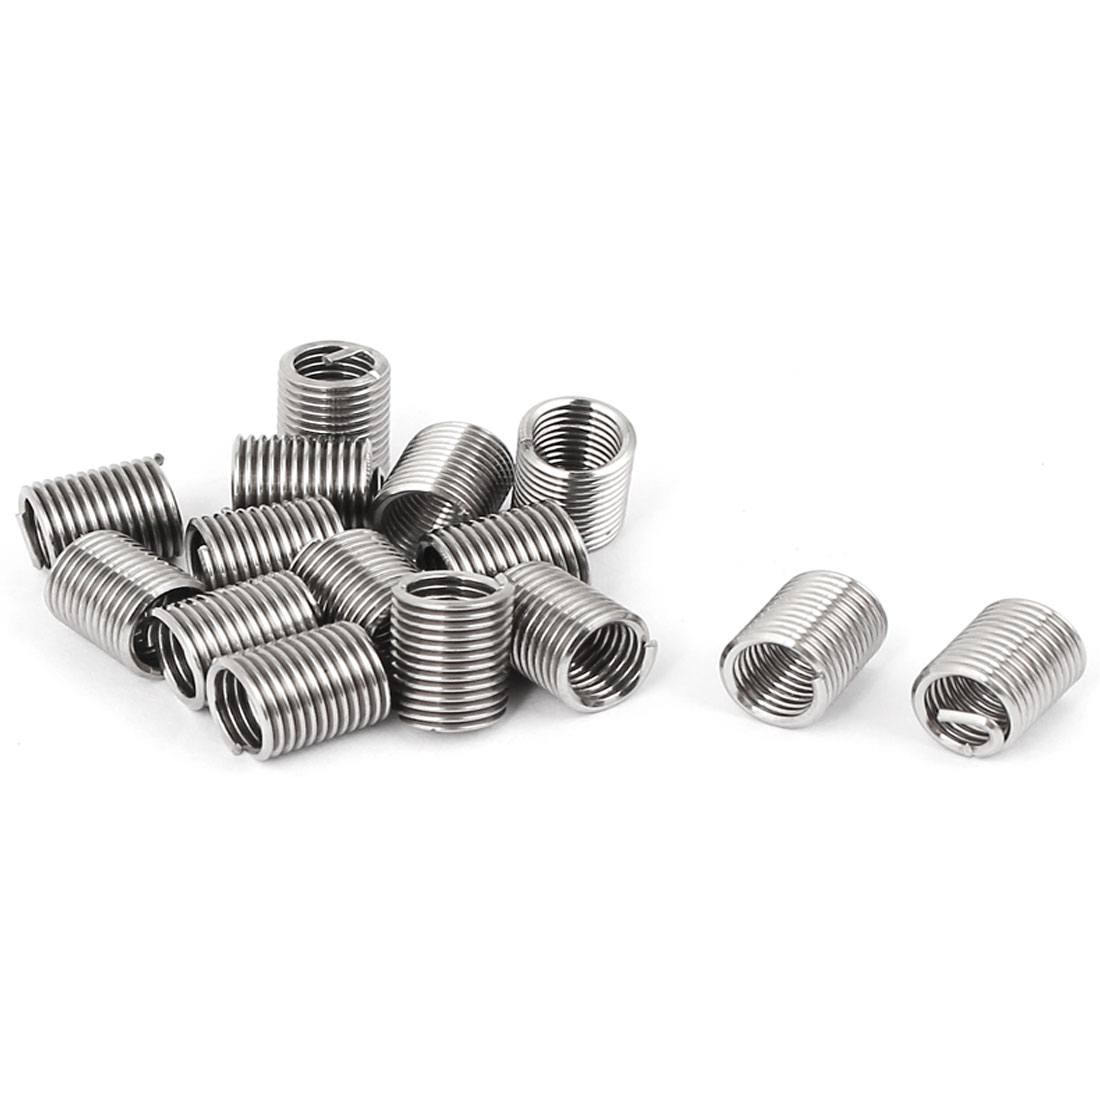 M5x0.8mmx2.5D Stainless Steel Helicoil Wire Thread Repair Inserts 15pcs